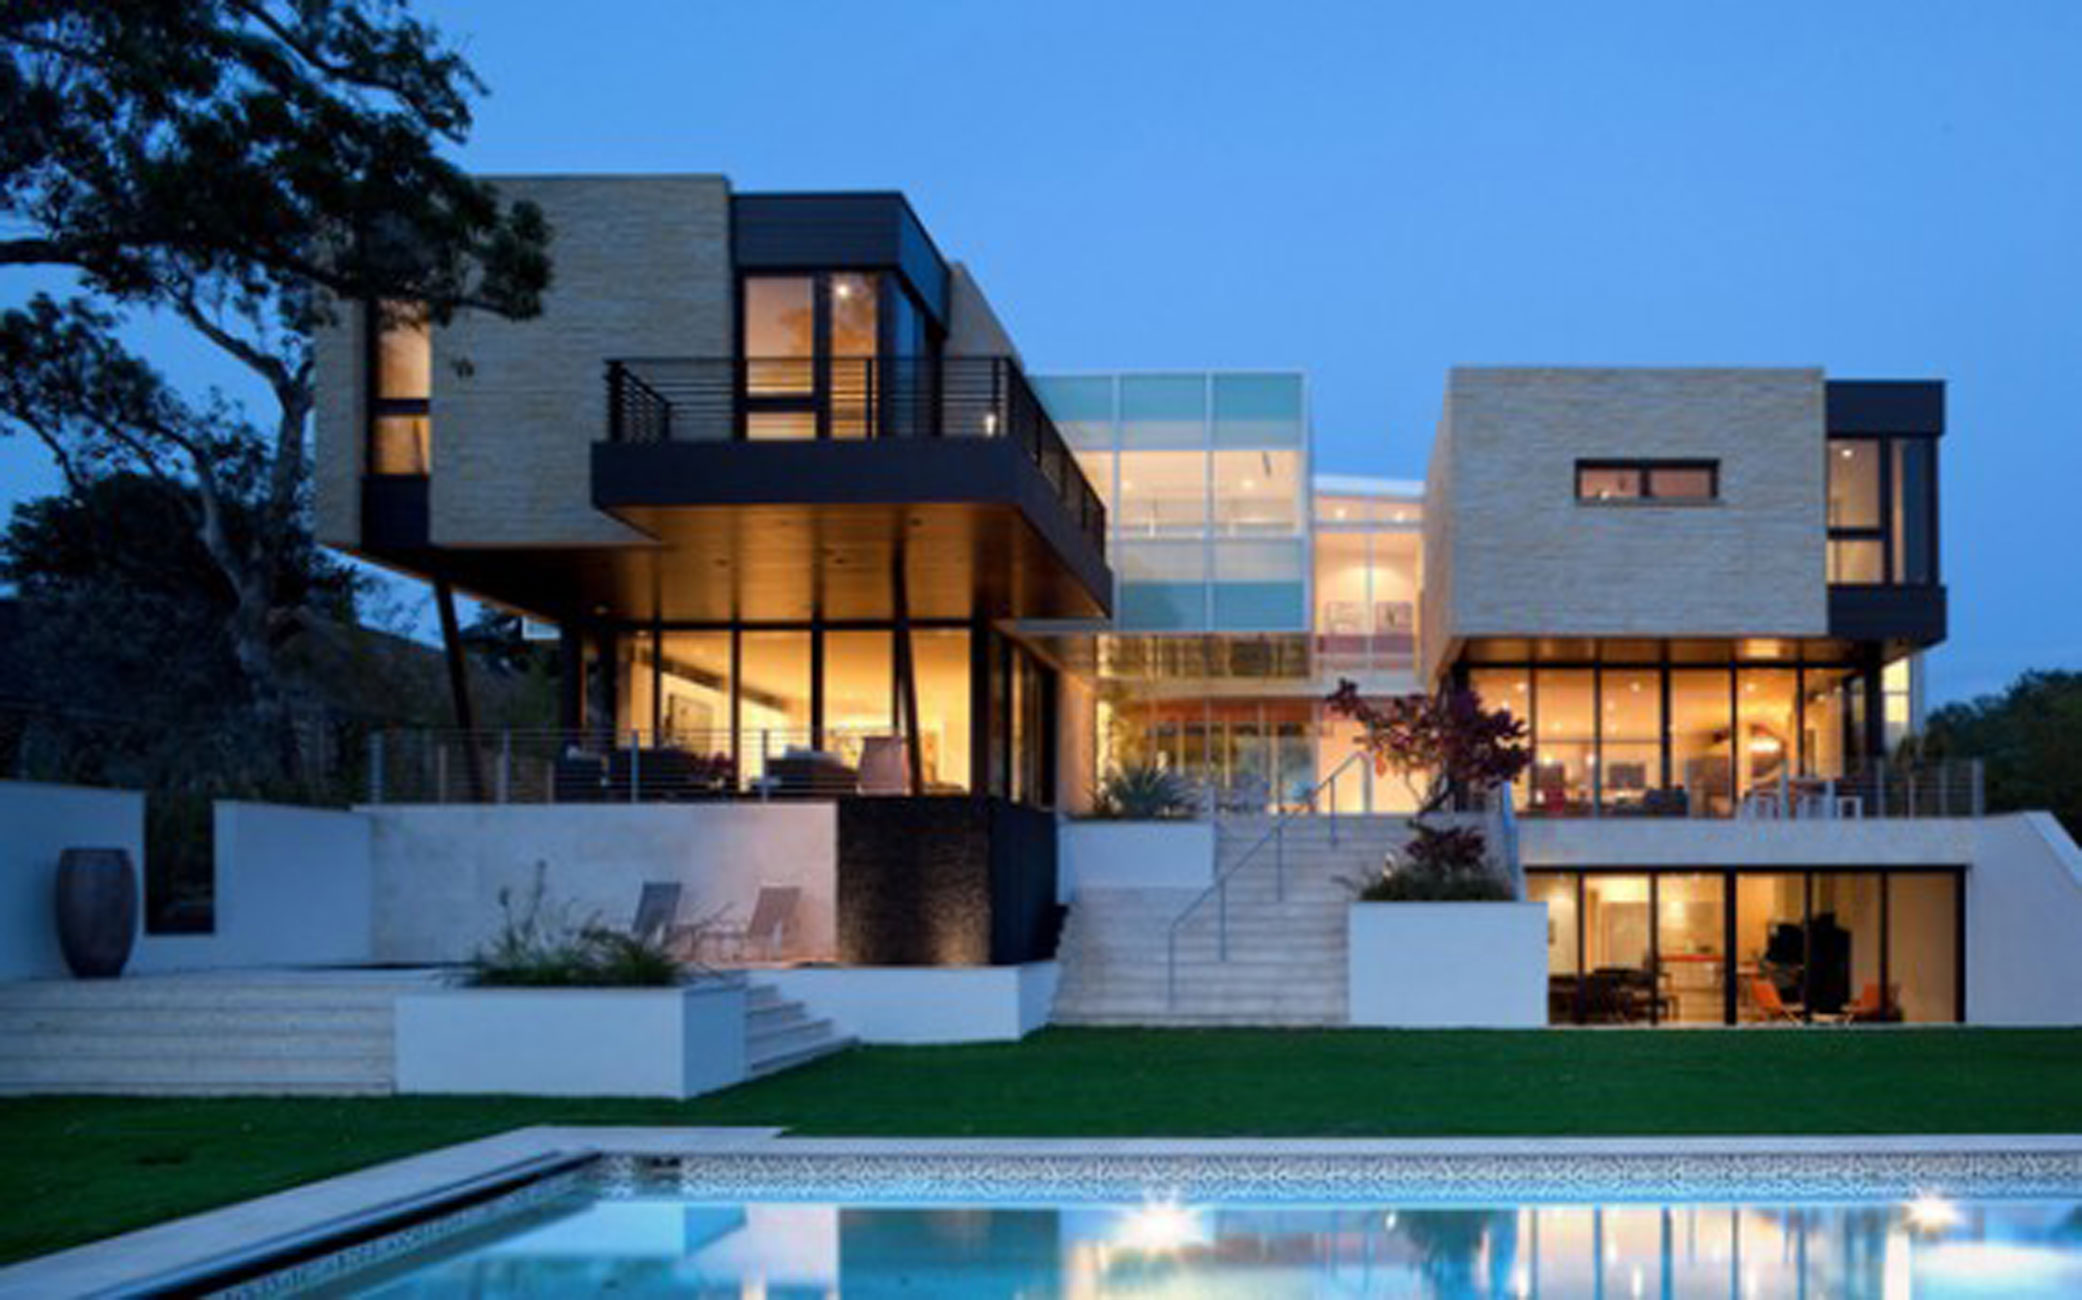 Complexity geometry architecture in a huge modern house